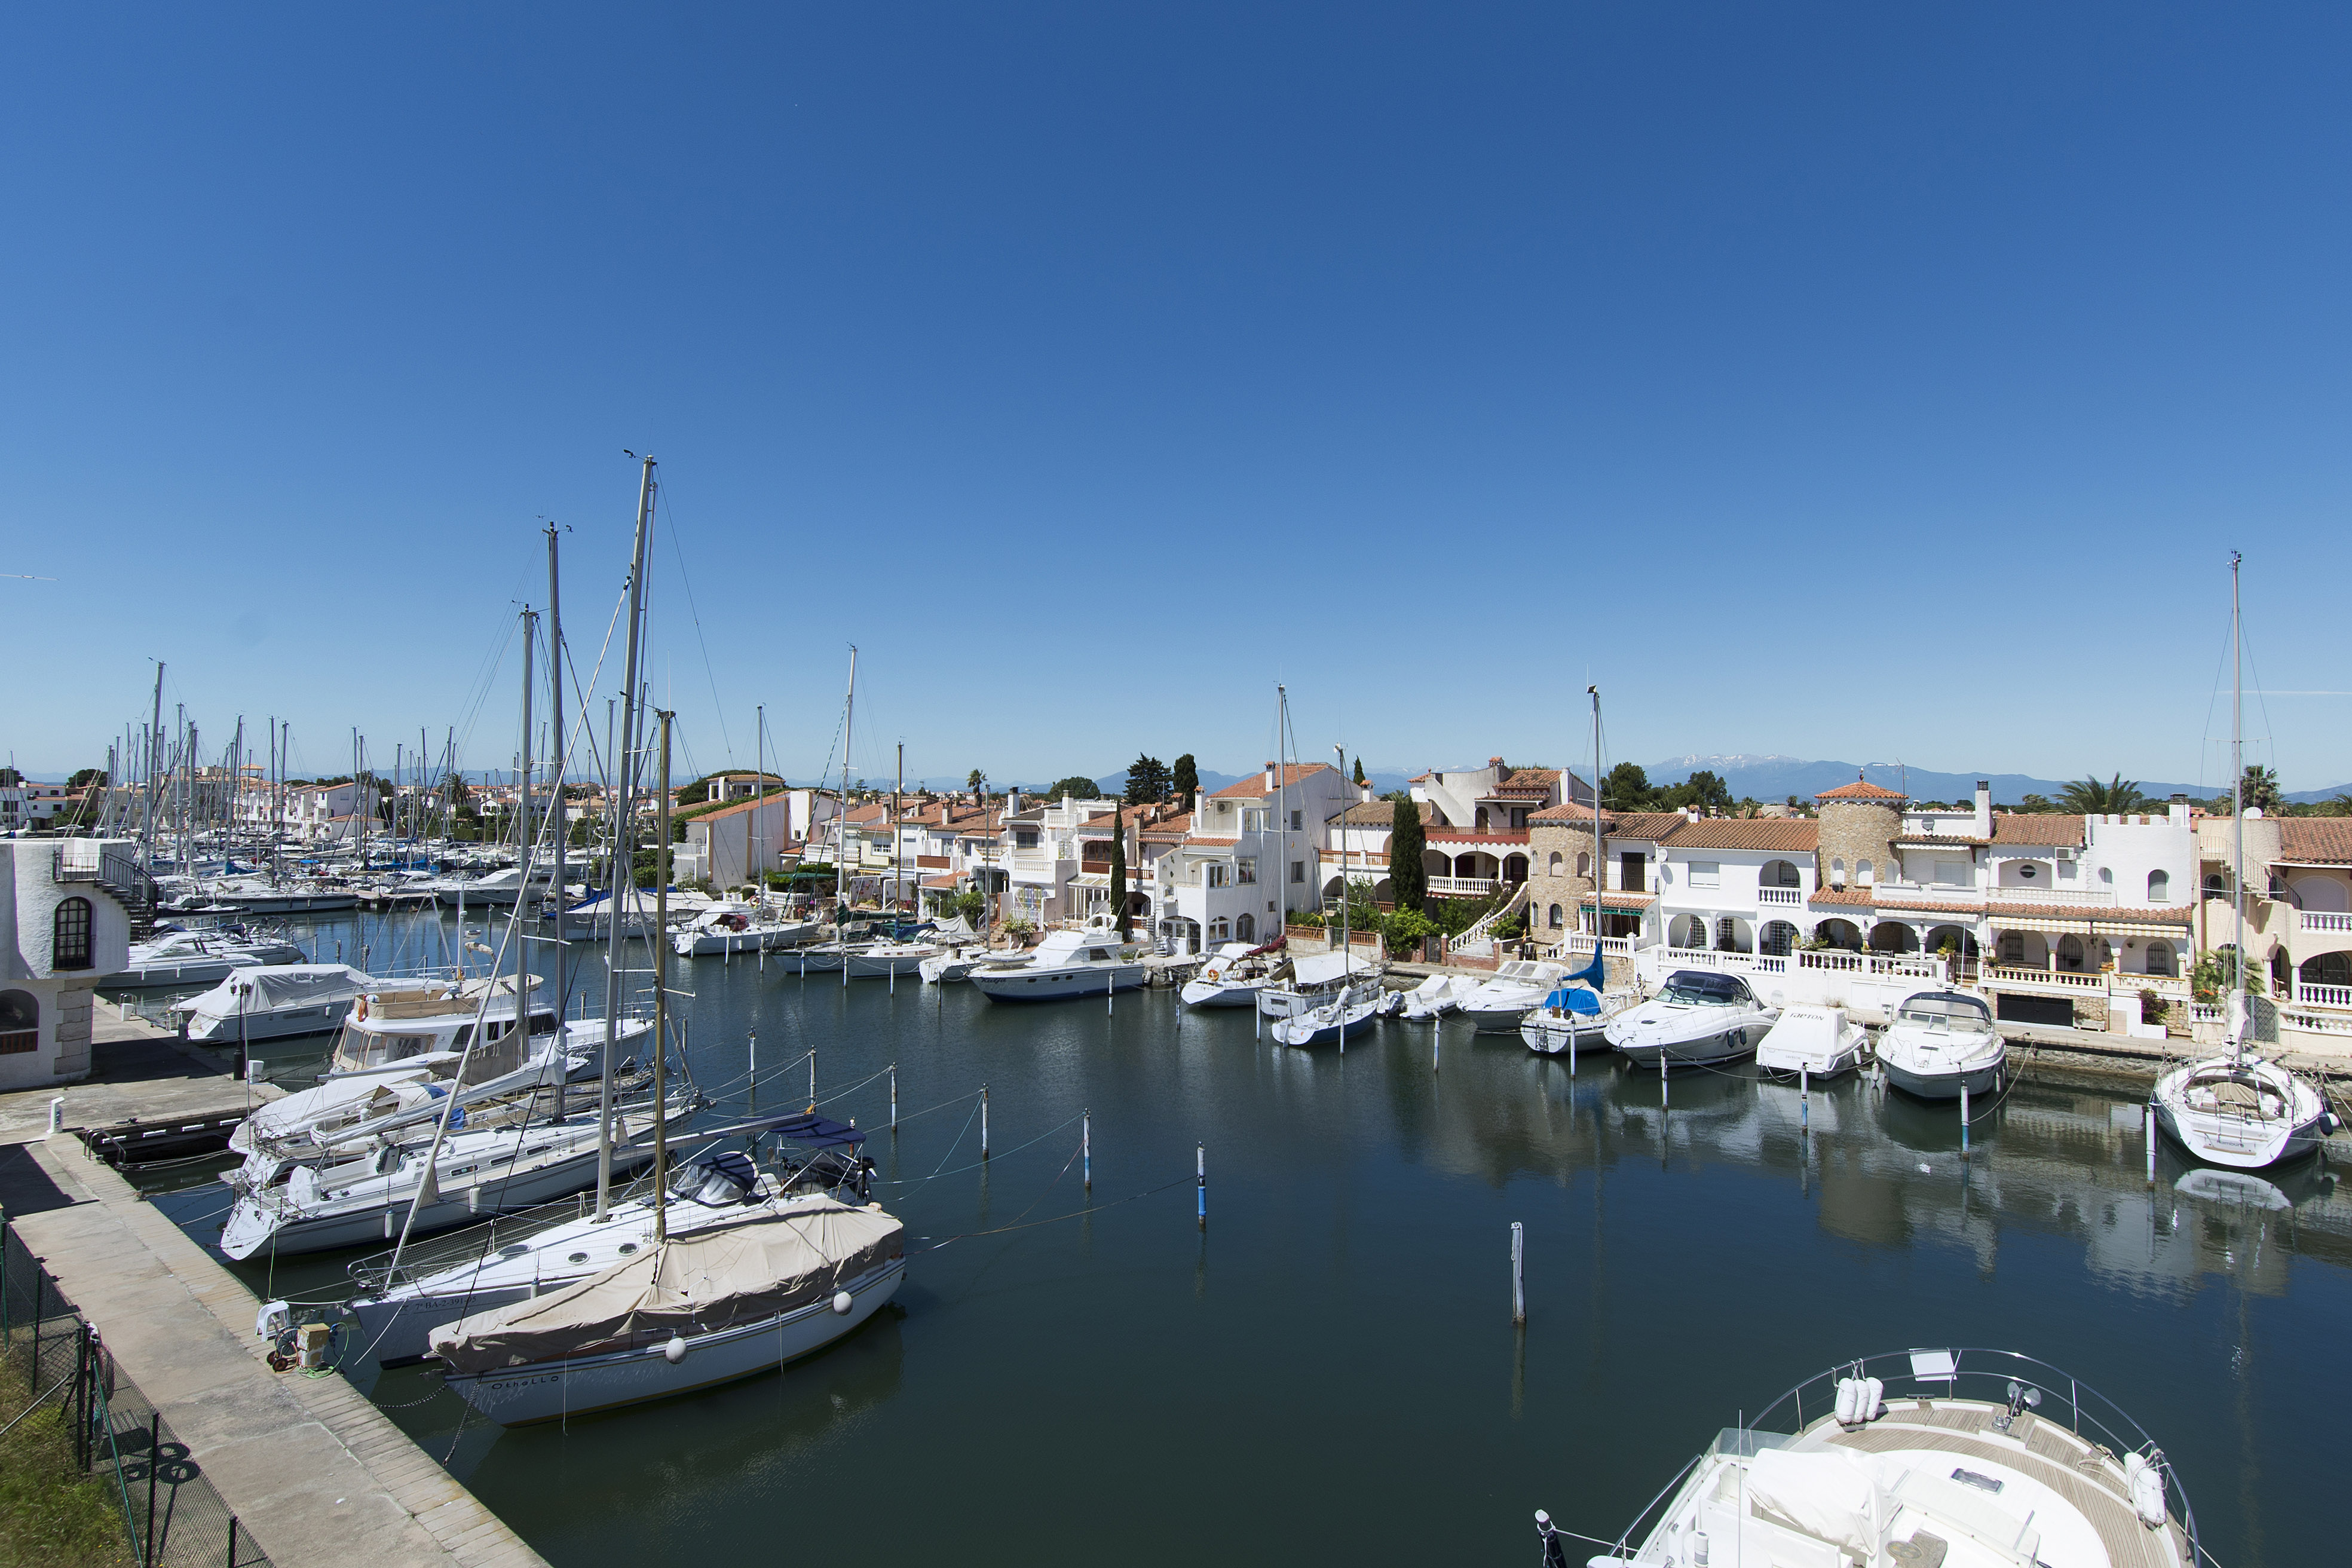 Property For Sale at Unique villa overlooking the harbor in Empuriabrava with two berths